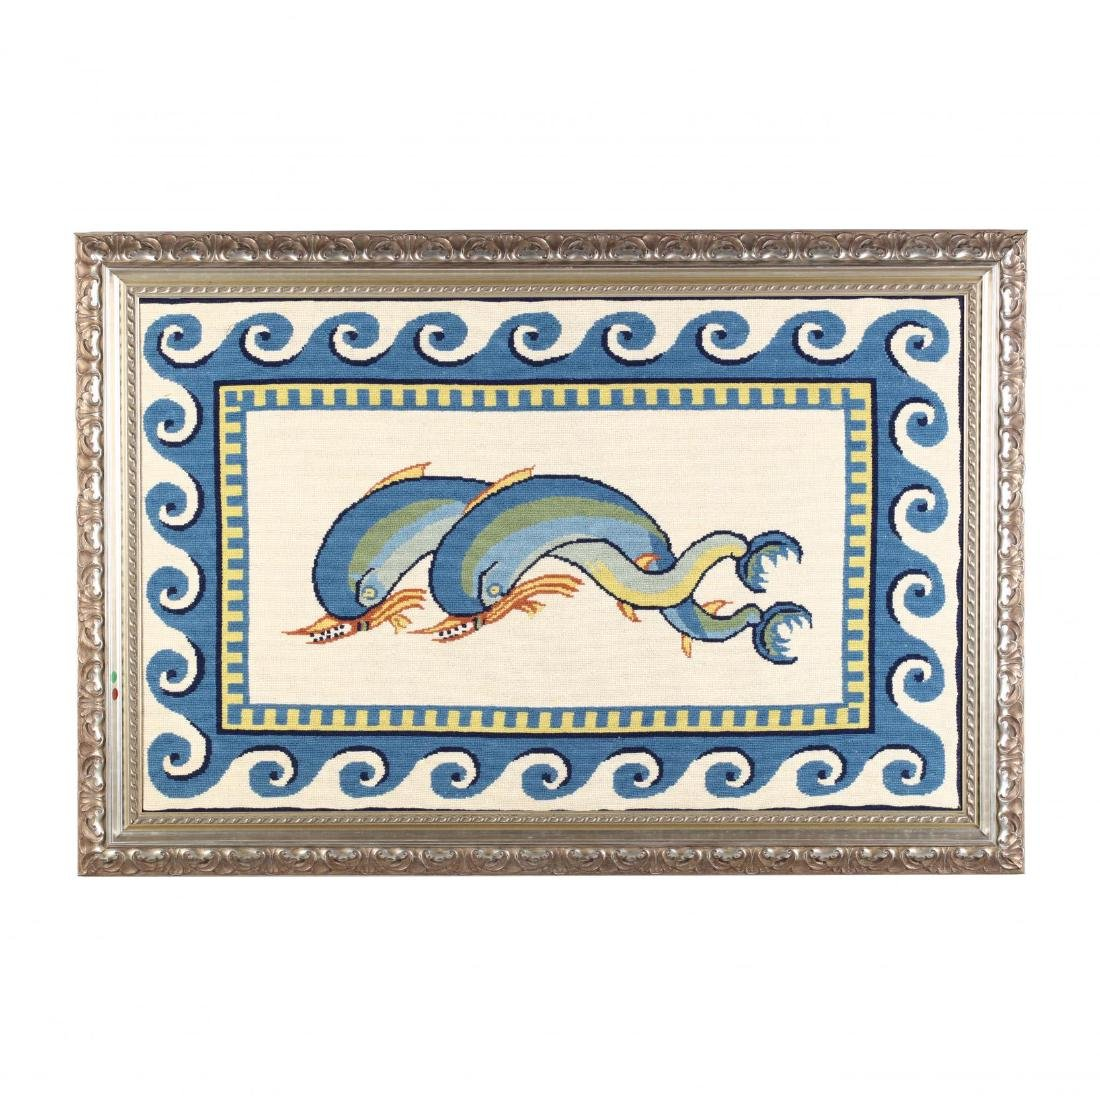 Needlepoint Depiction of Dolphins After a Roman Mosaic